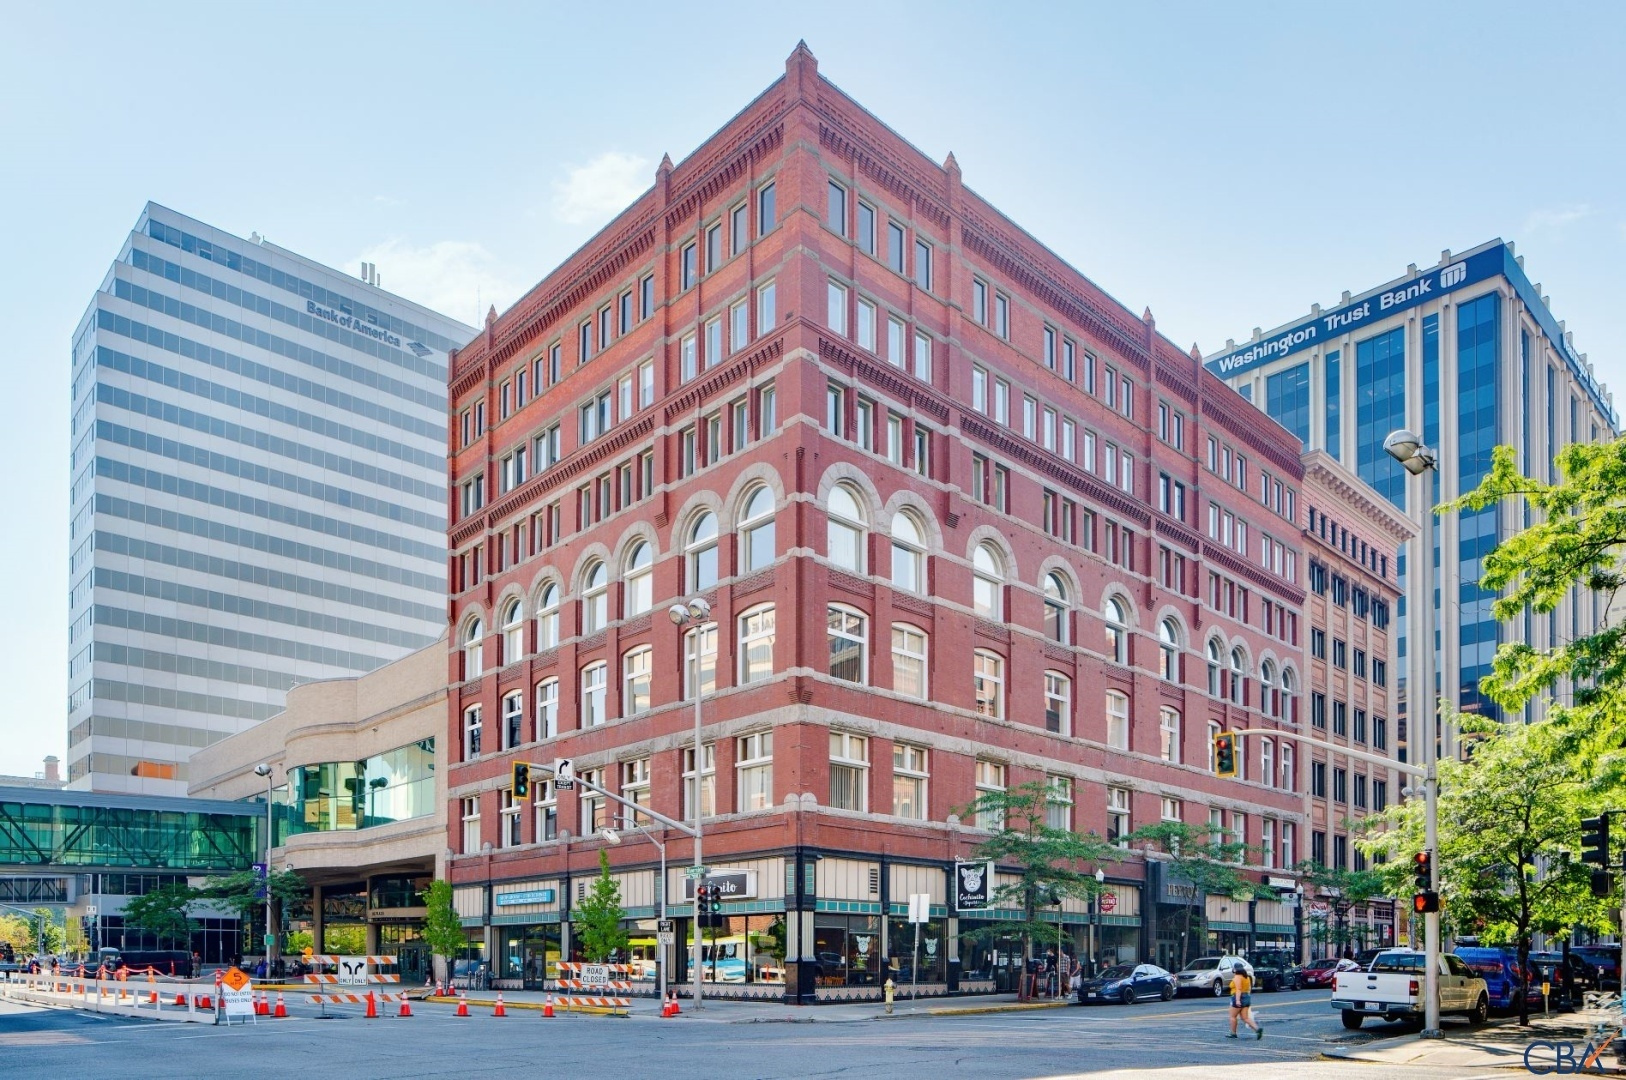 -Building in 1913 and remodeled in 2001 & 2020-Located in Spokane's Central Business District-Premier location-Adjacent to the Historic Davenport Hotel, Washington Trust Bank, STA, Hotel Lusso and SRBC